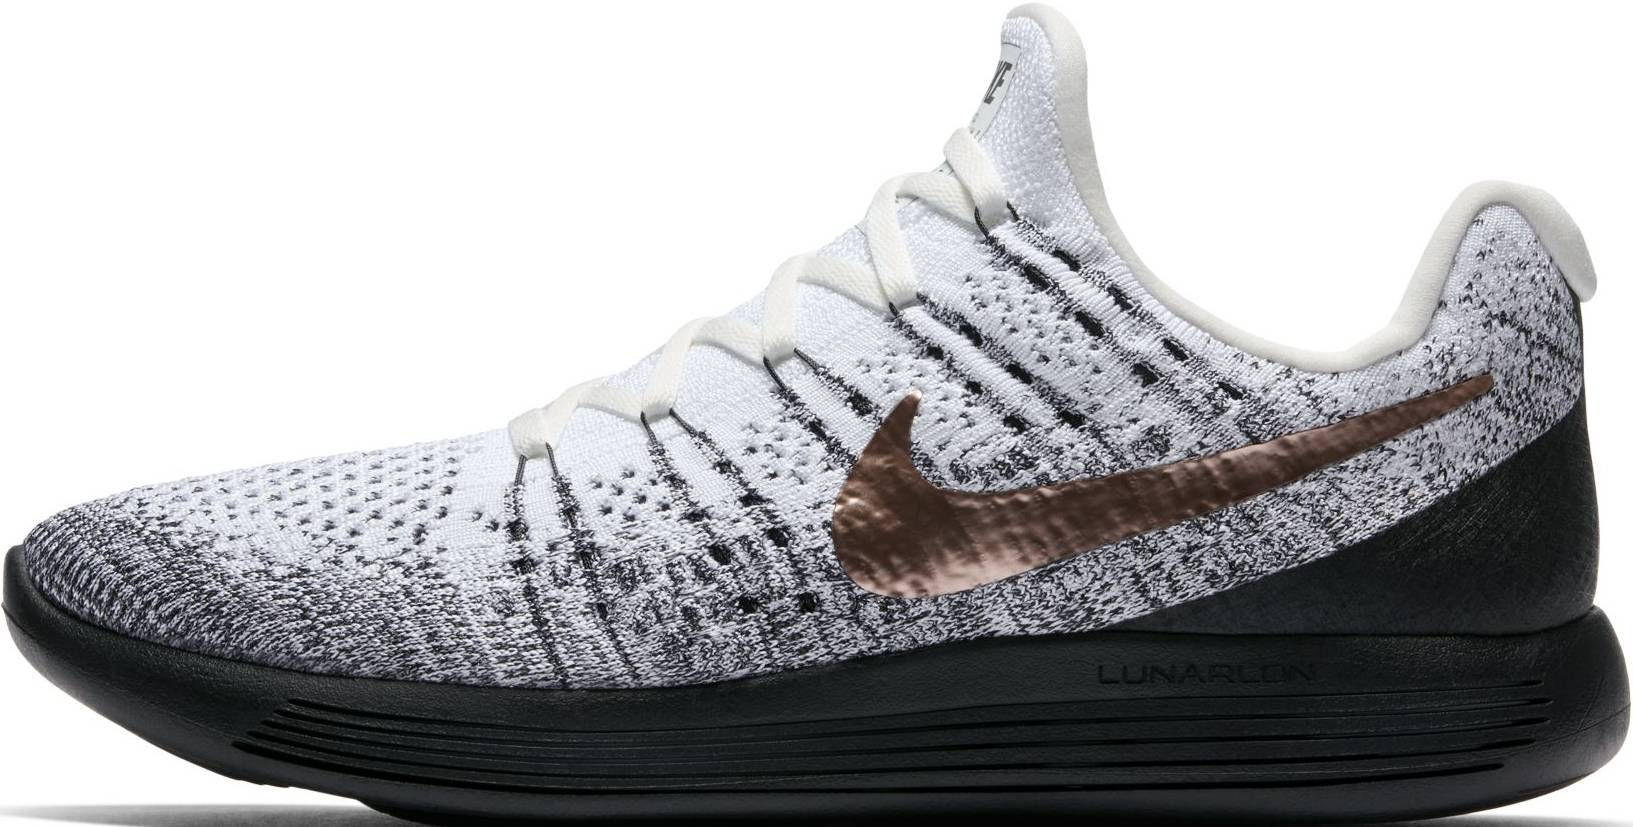 Cereza Inducir Chaise longue  Nike LunarEpic Low Flyknit 2 only $90 + review | RunRepeat